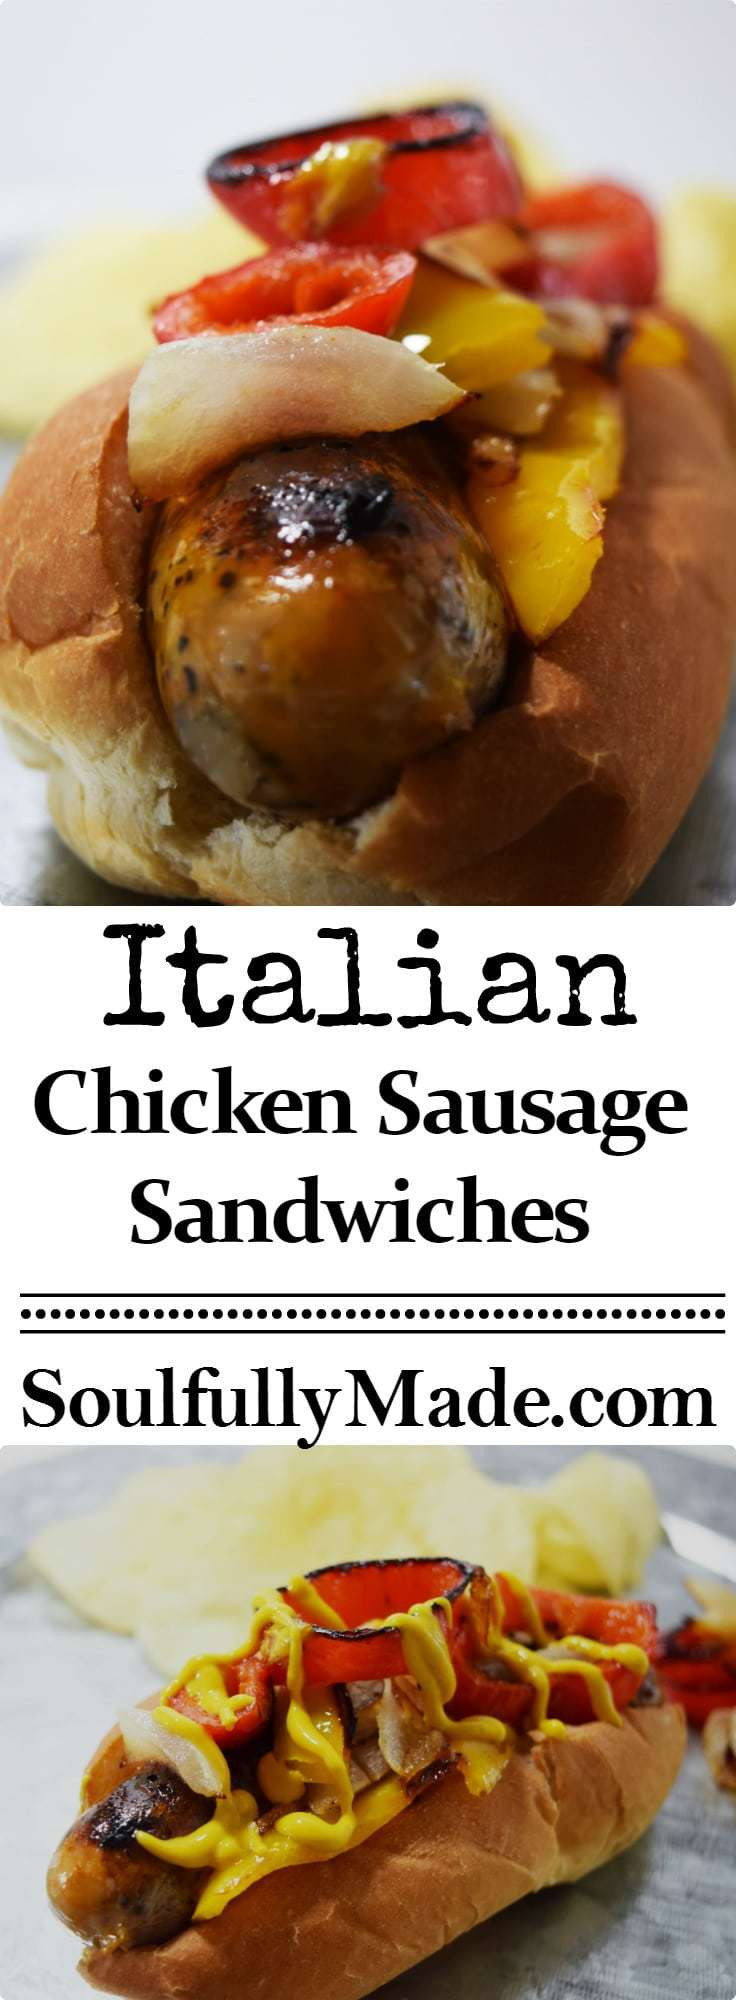 Italian Chicken Sausage  Easy Italian Chicken Sausage Sandwiches with Peppers